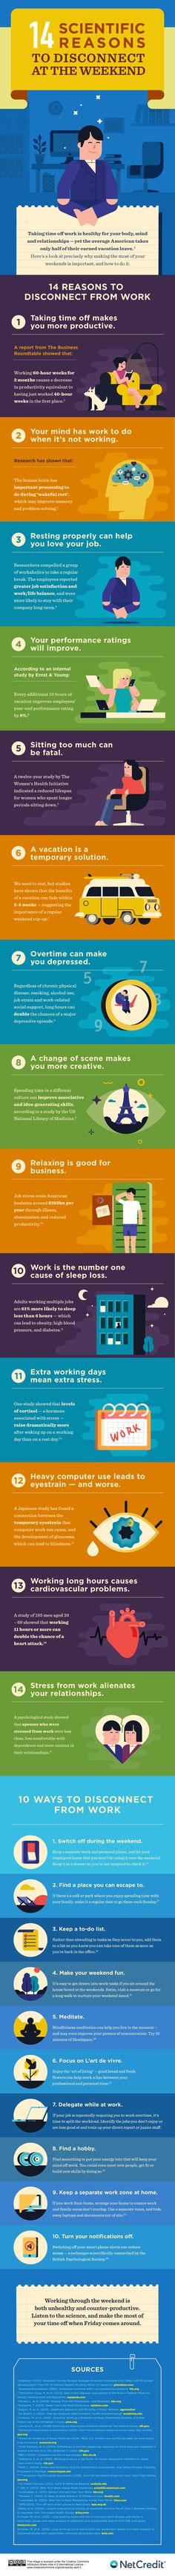 14 Scientific Reasons To Disconnect At The Weekend - #infographic